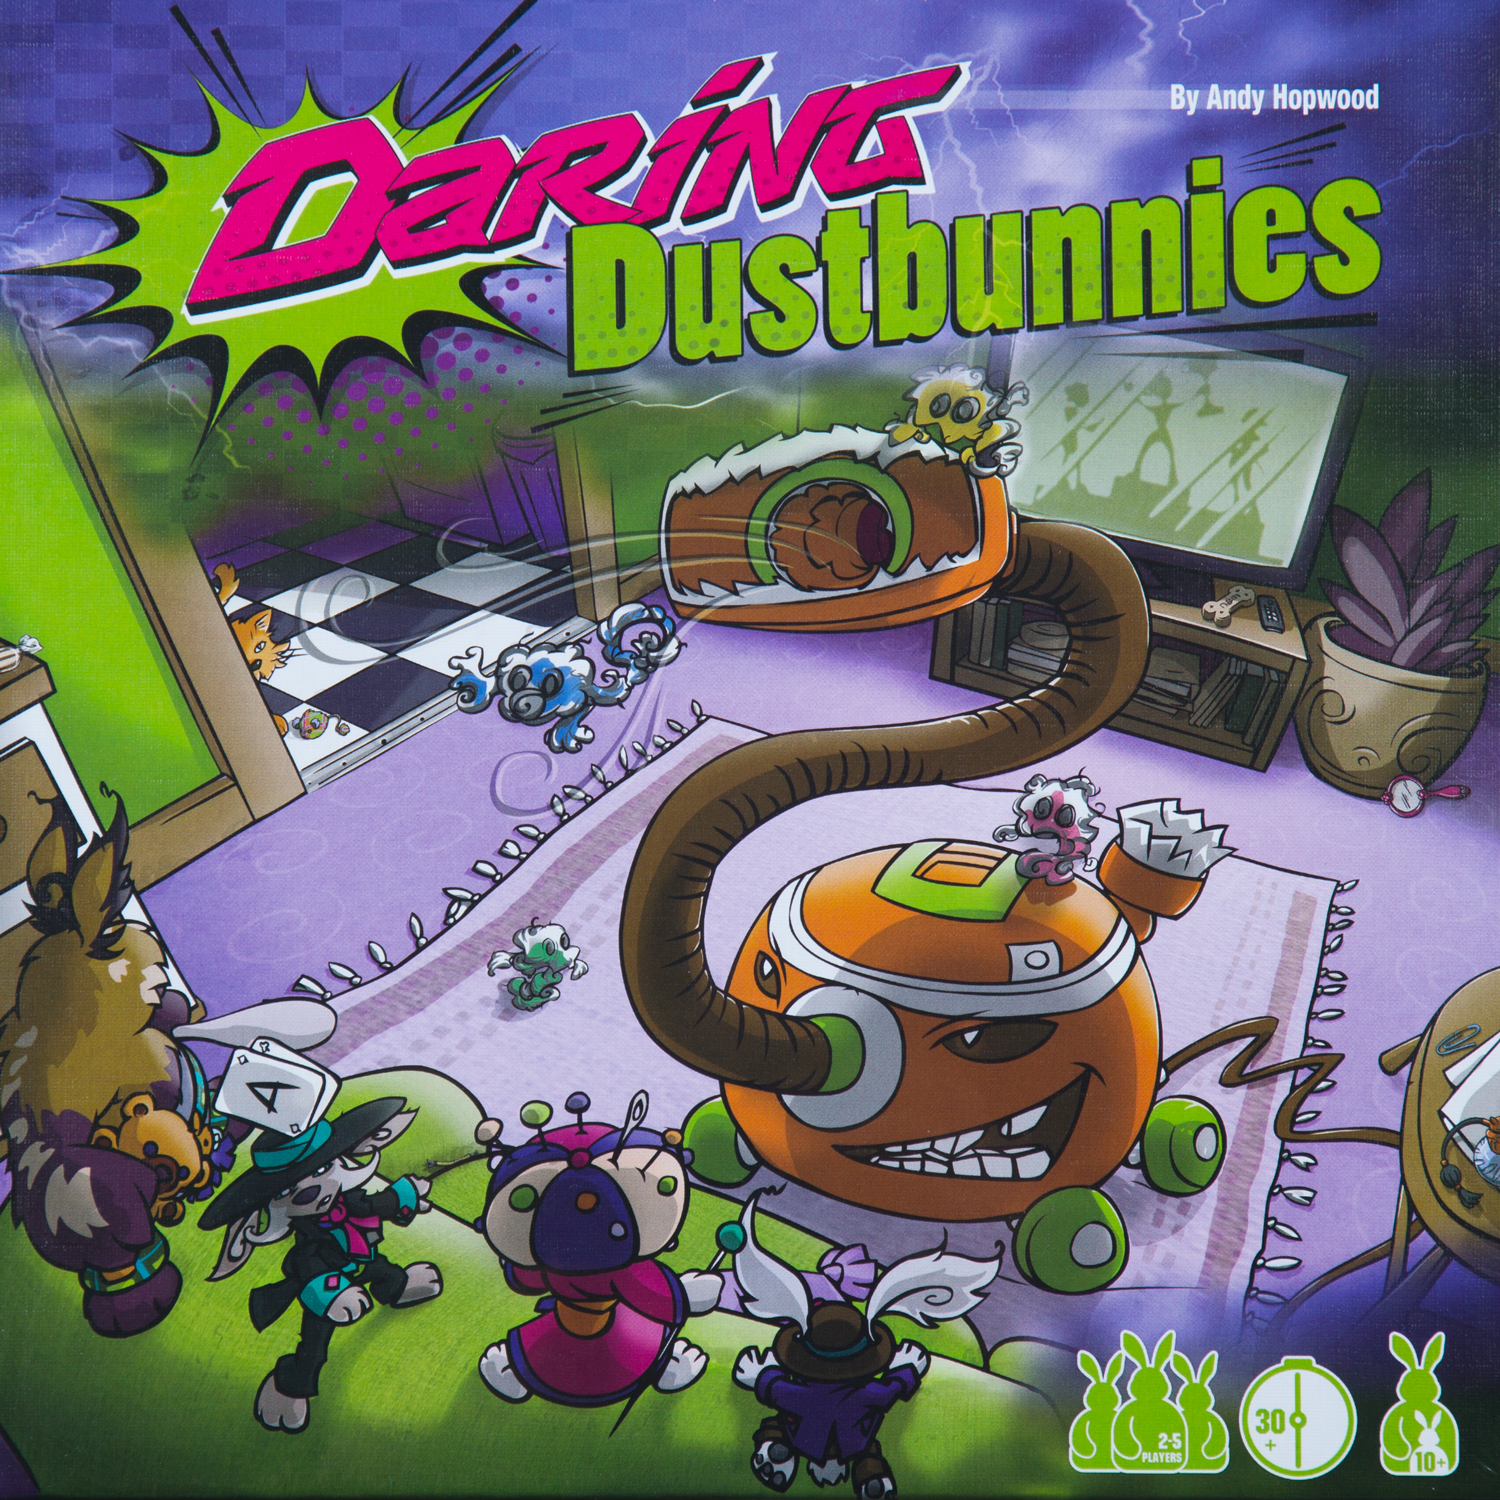 Daring-Dustbunnies-board-game-buy-online-from-Out-Of-Town-Games